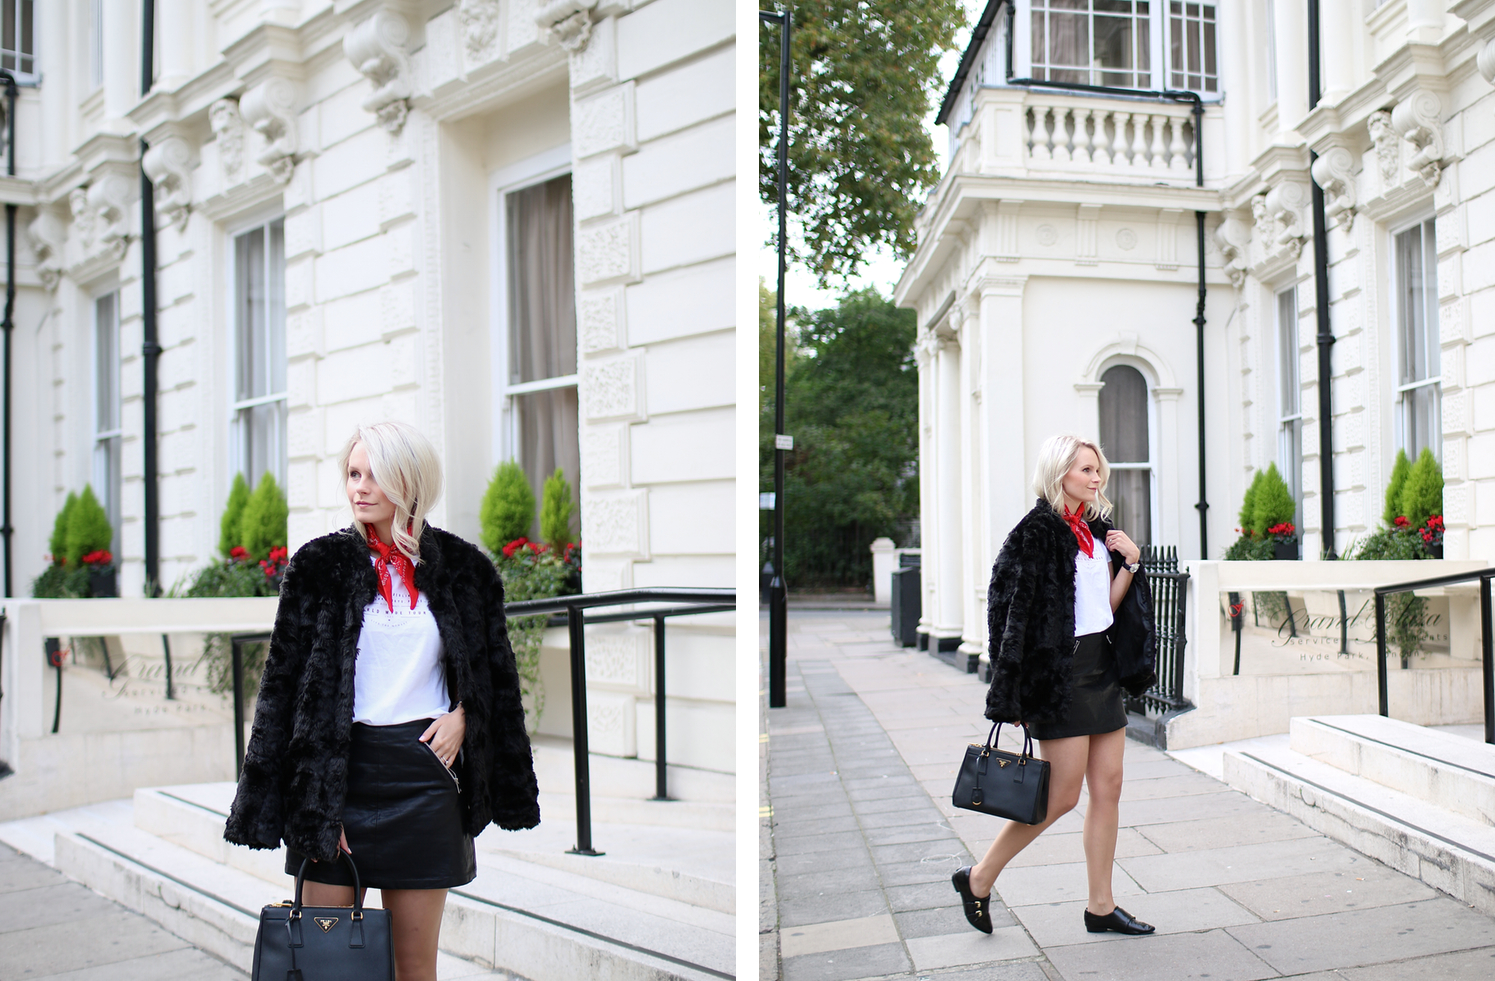 how to style faux fur in the winter, winter style, red bow tie and prada handbag